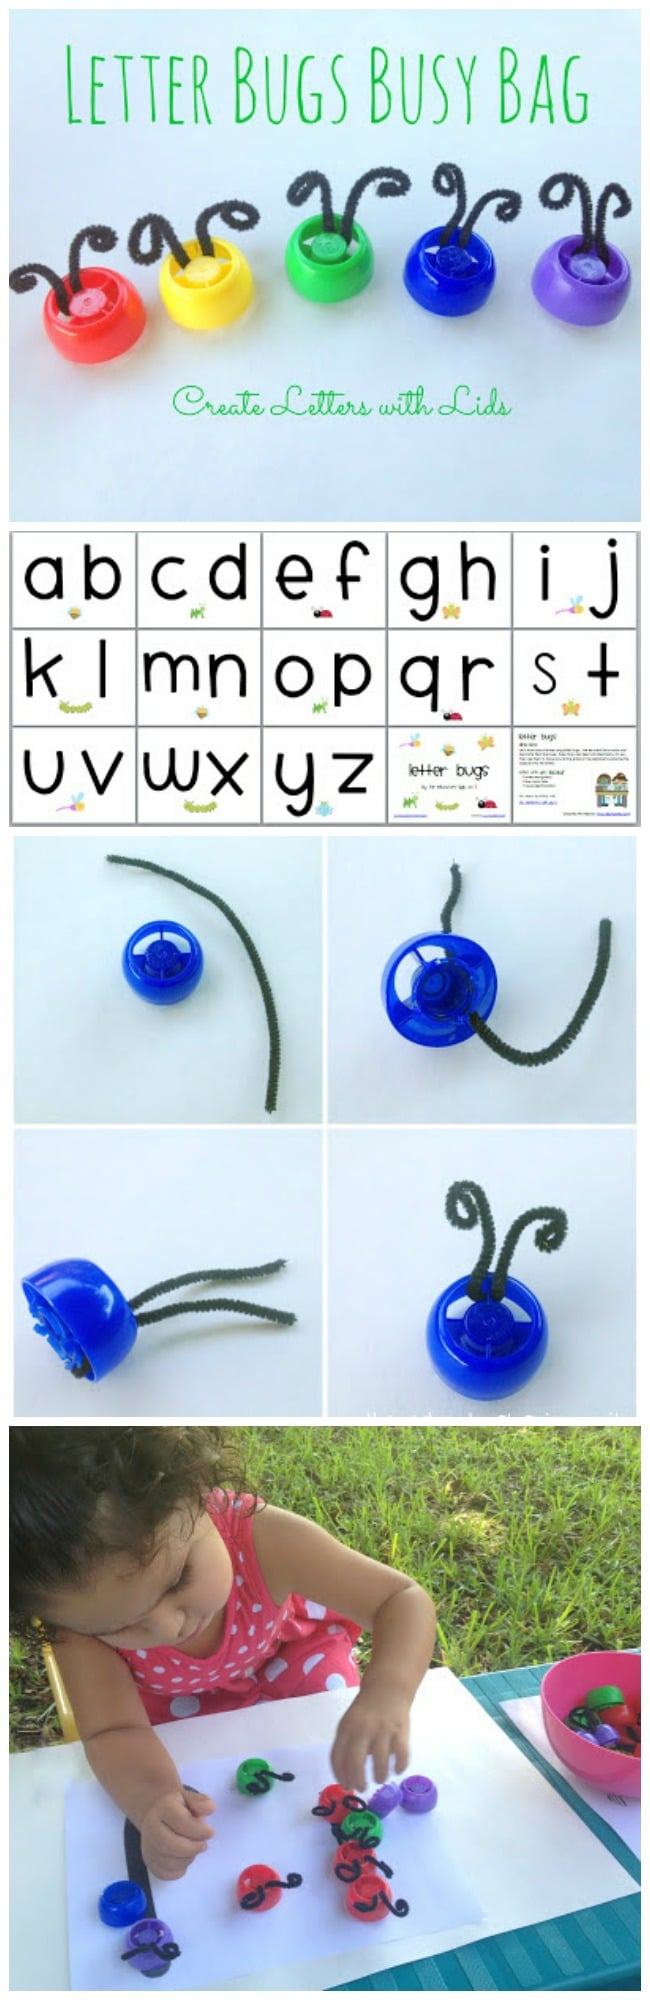 Alphabet Activity for Kids using Recycled Lids and Printable